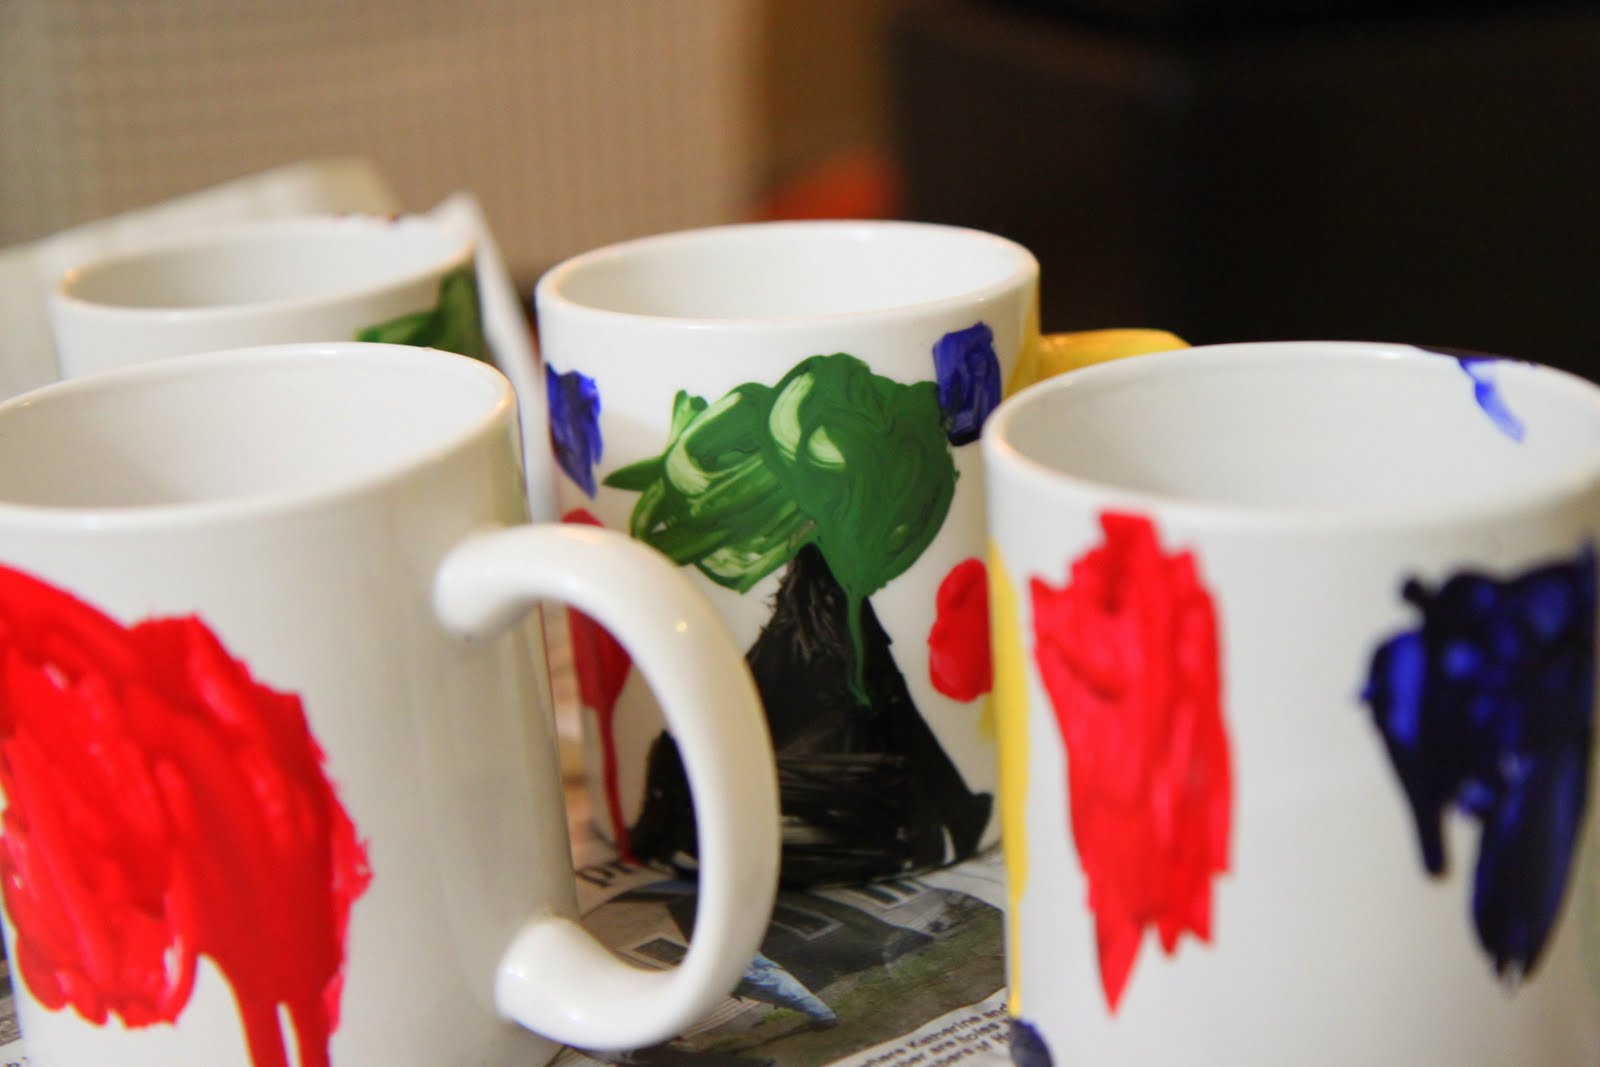 Gifts you can make hand painted mugs momadvice for How to paint a mug